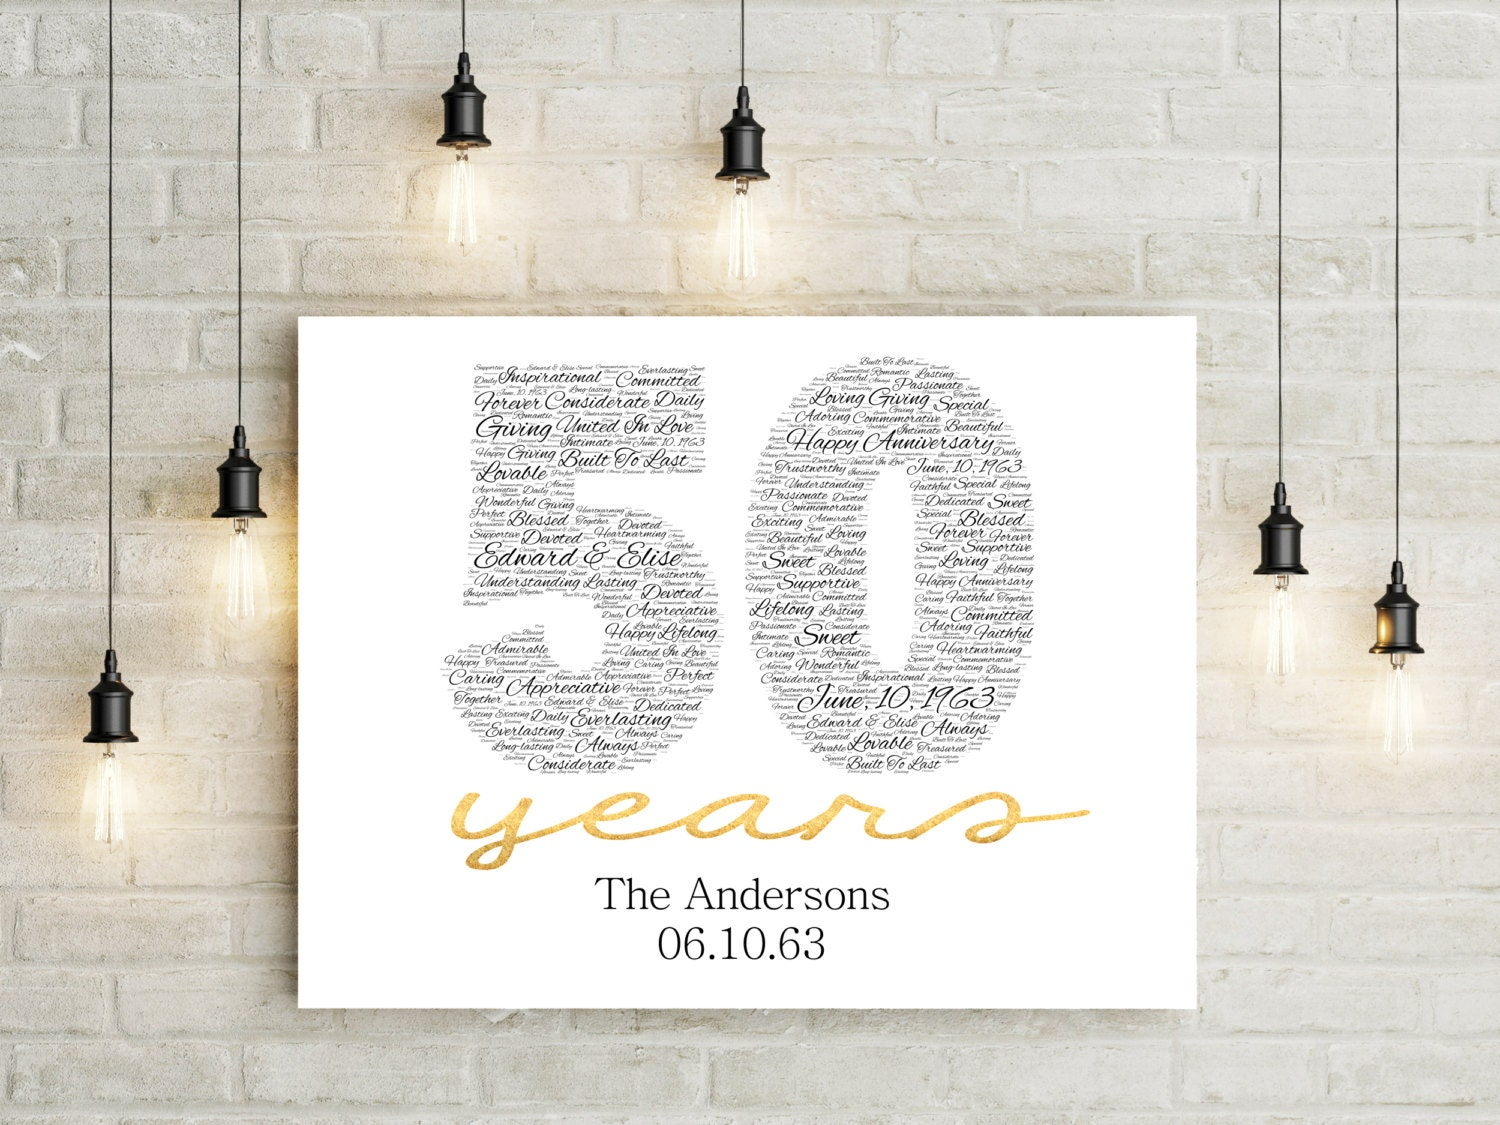 50th anniversary gift canvas golden wedding anniversary gift. Black Bedroom Furniture Sets. Home Design Ideas